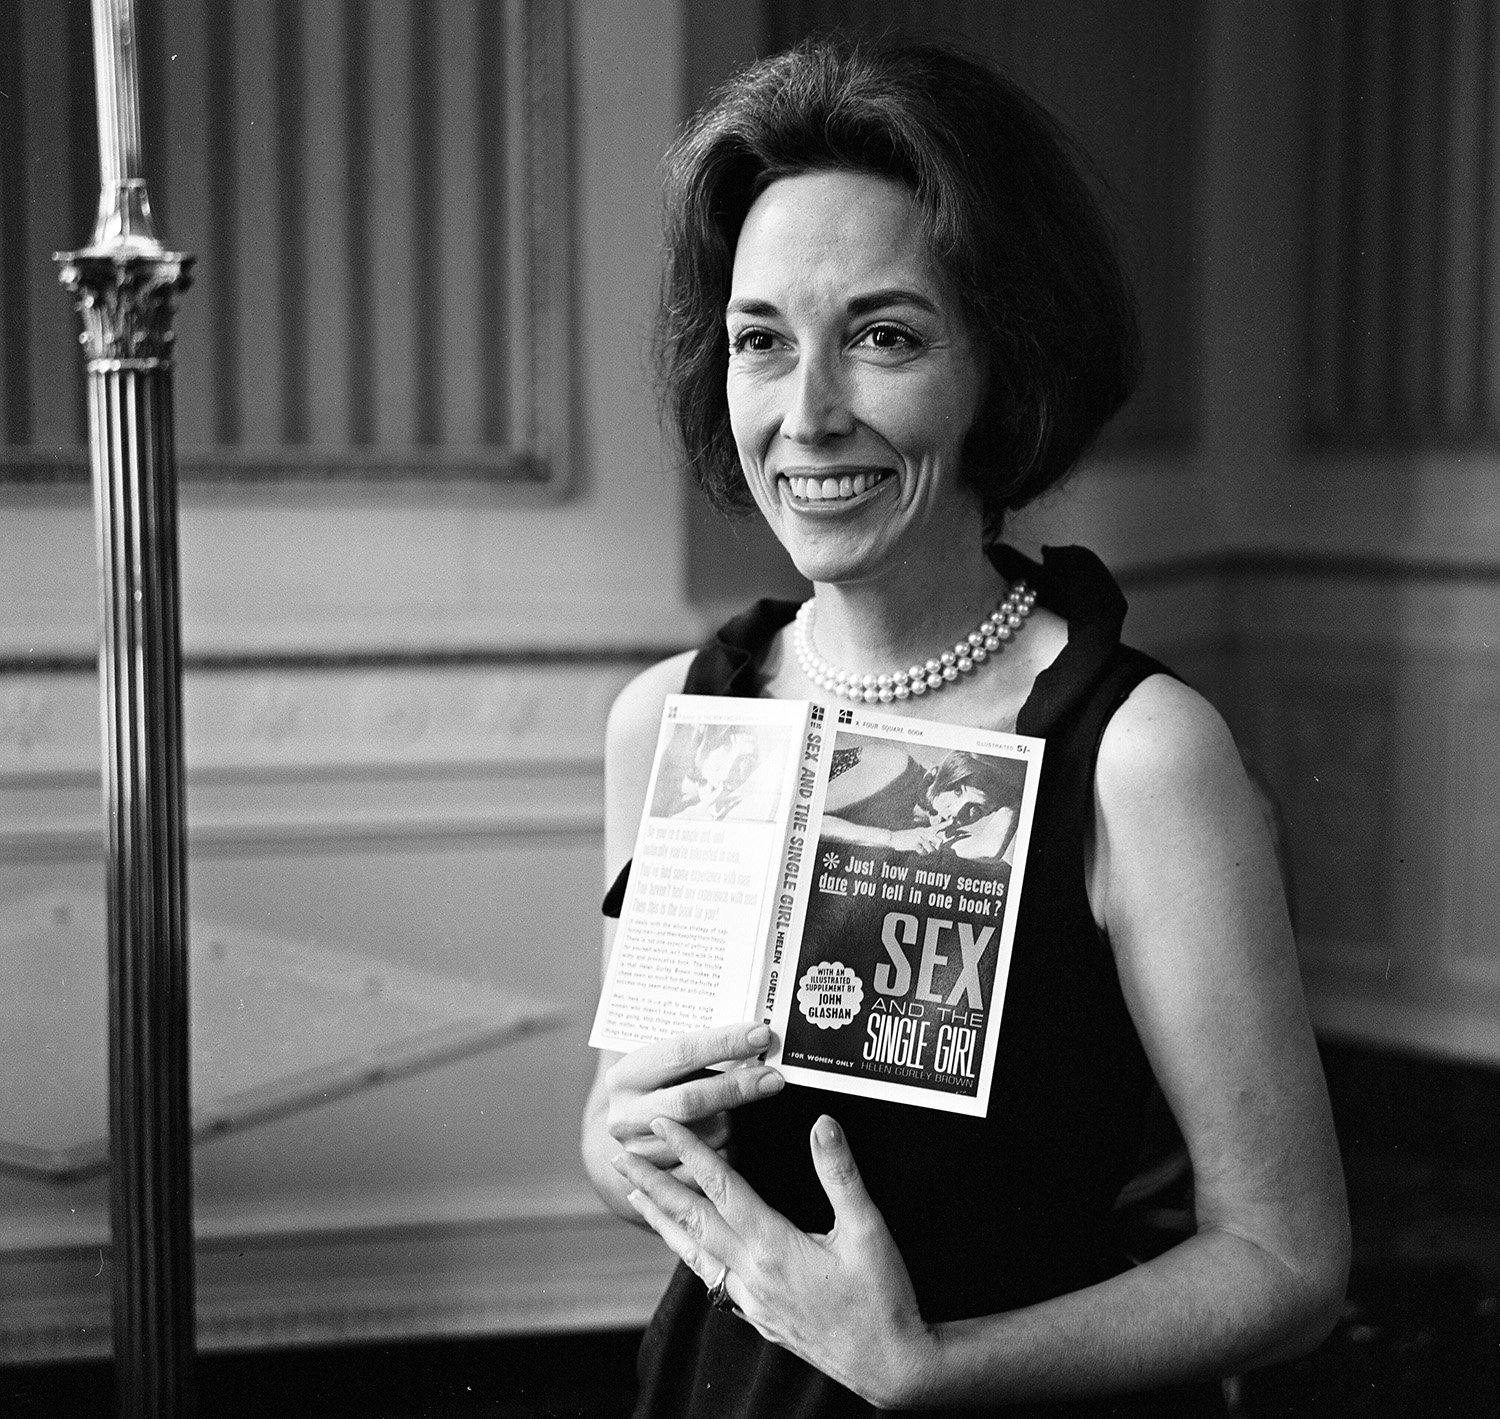 Author, publisher, and businesswoman Helen Gurley Brown, in 1964. She was the editor-in-chief of Cosmopolitan magazine for 32 years. (Credit: Daily Mirror/Mirrorpix/Getty Images)